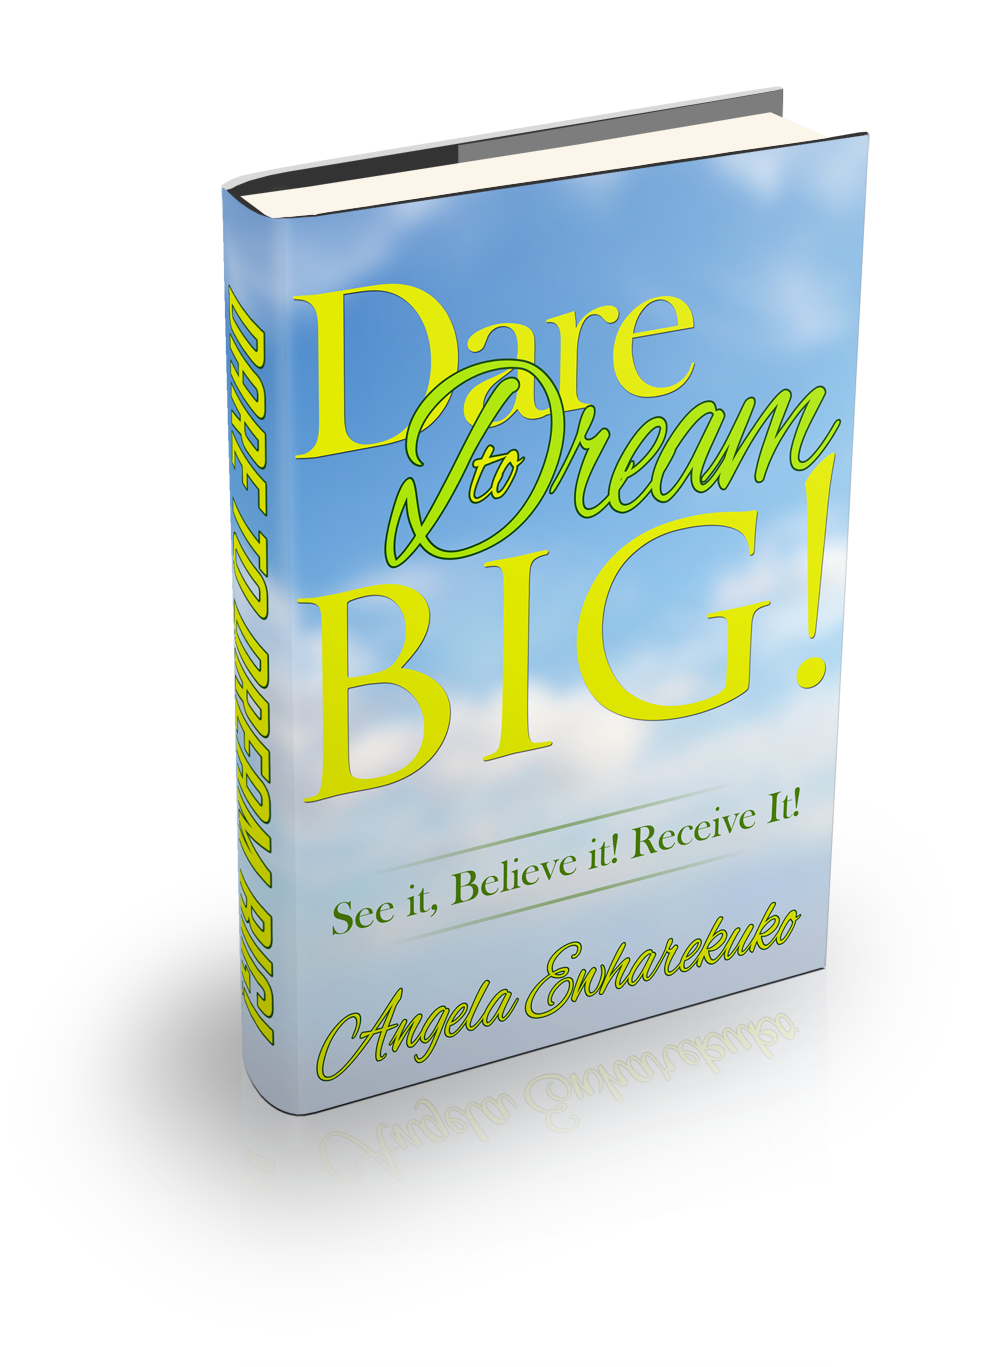 Dare To Dream Big Is Written By Me Coach Angie I Encourage You To Walk In Your God Given Dreams And Tell You About Dream Big Single Christian Christian Blogs